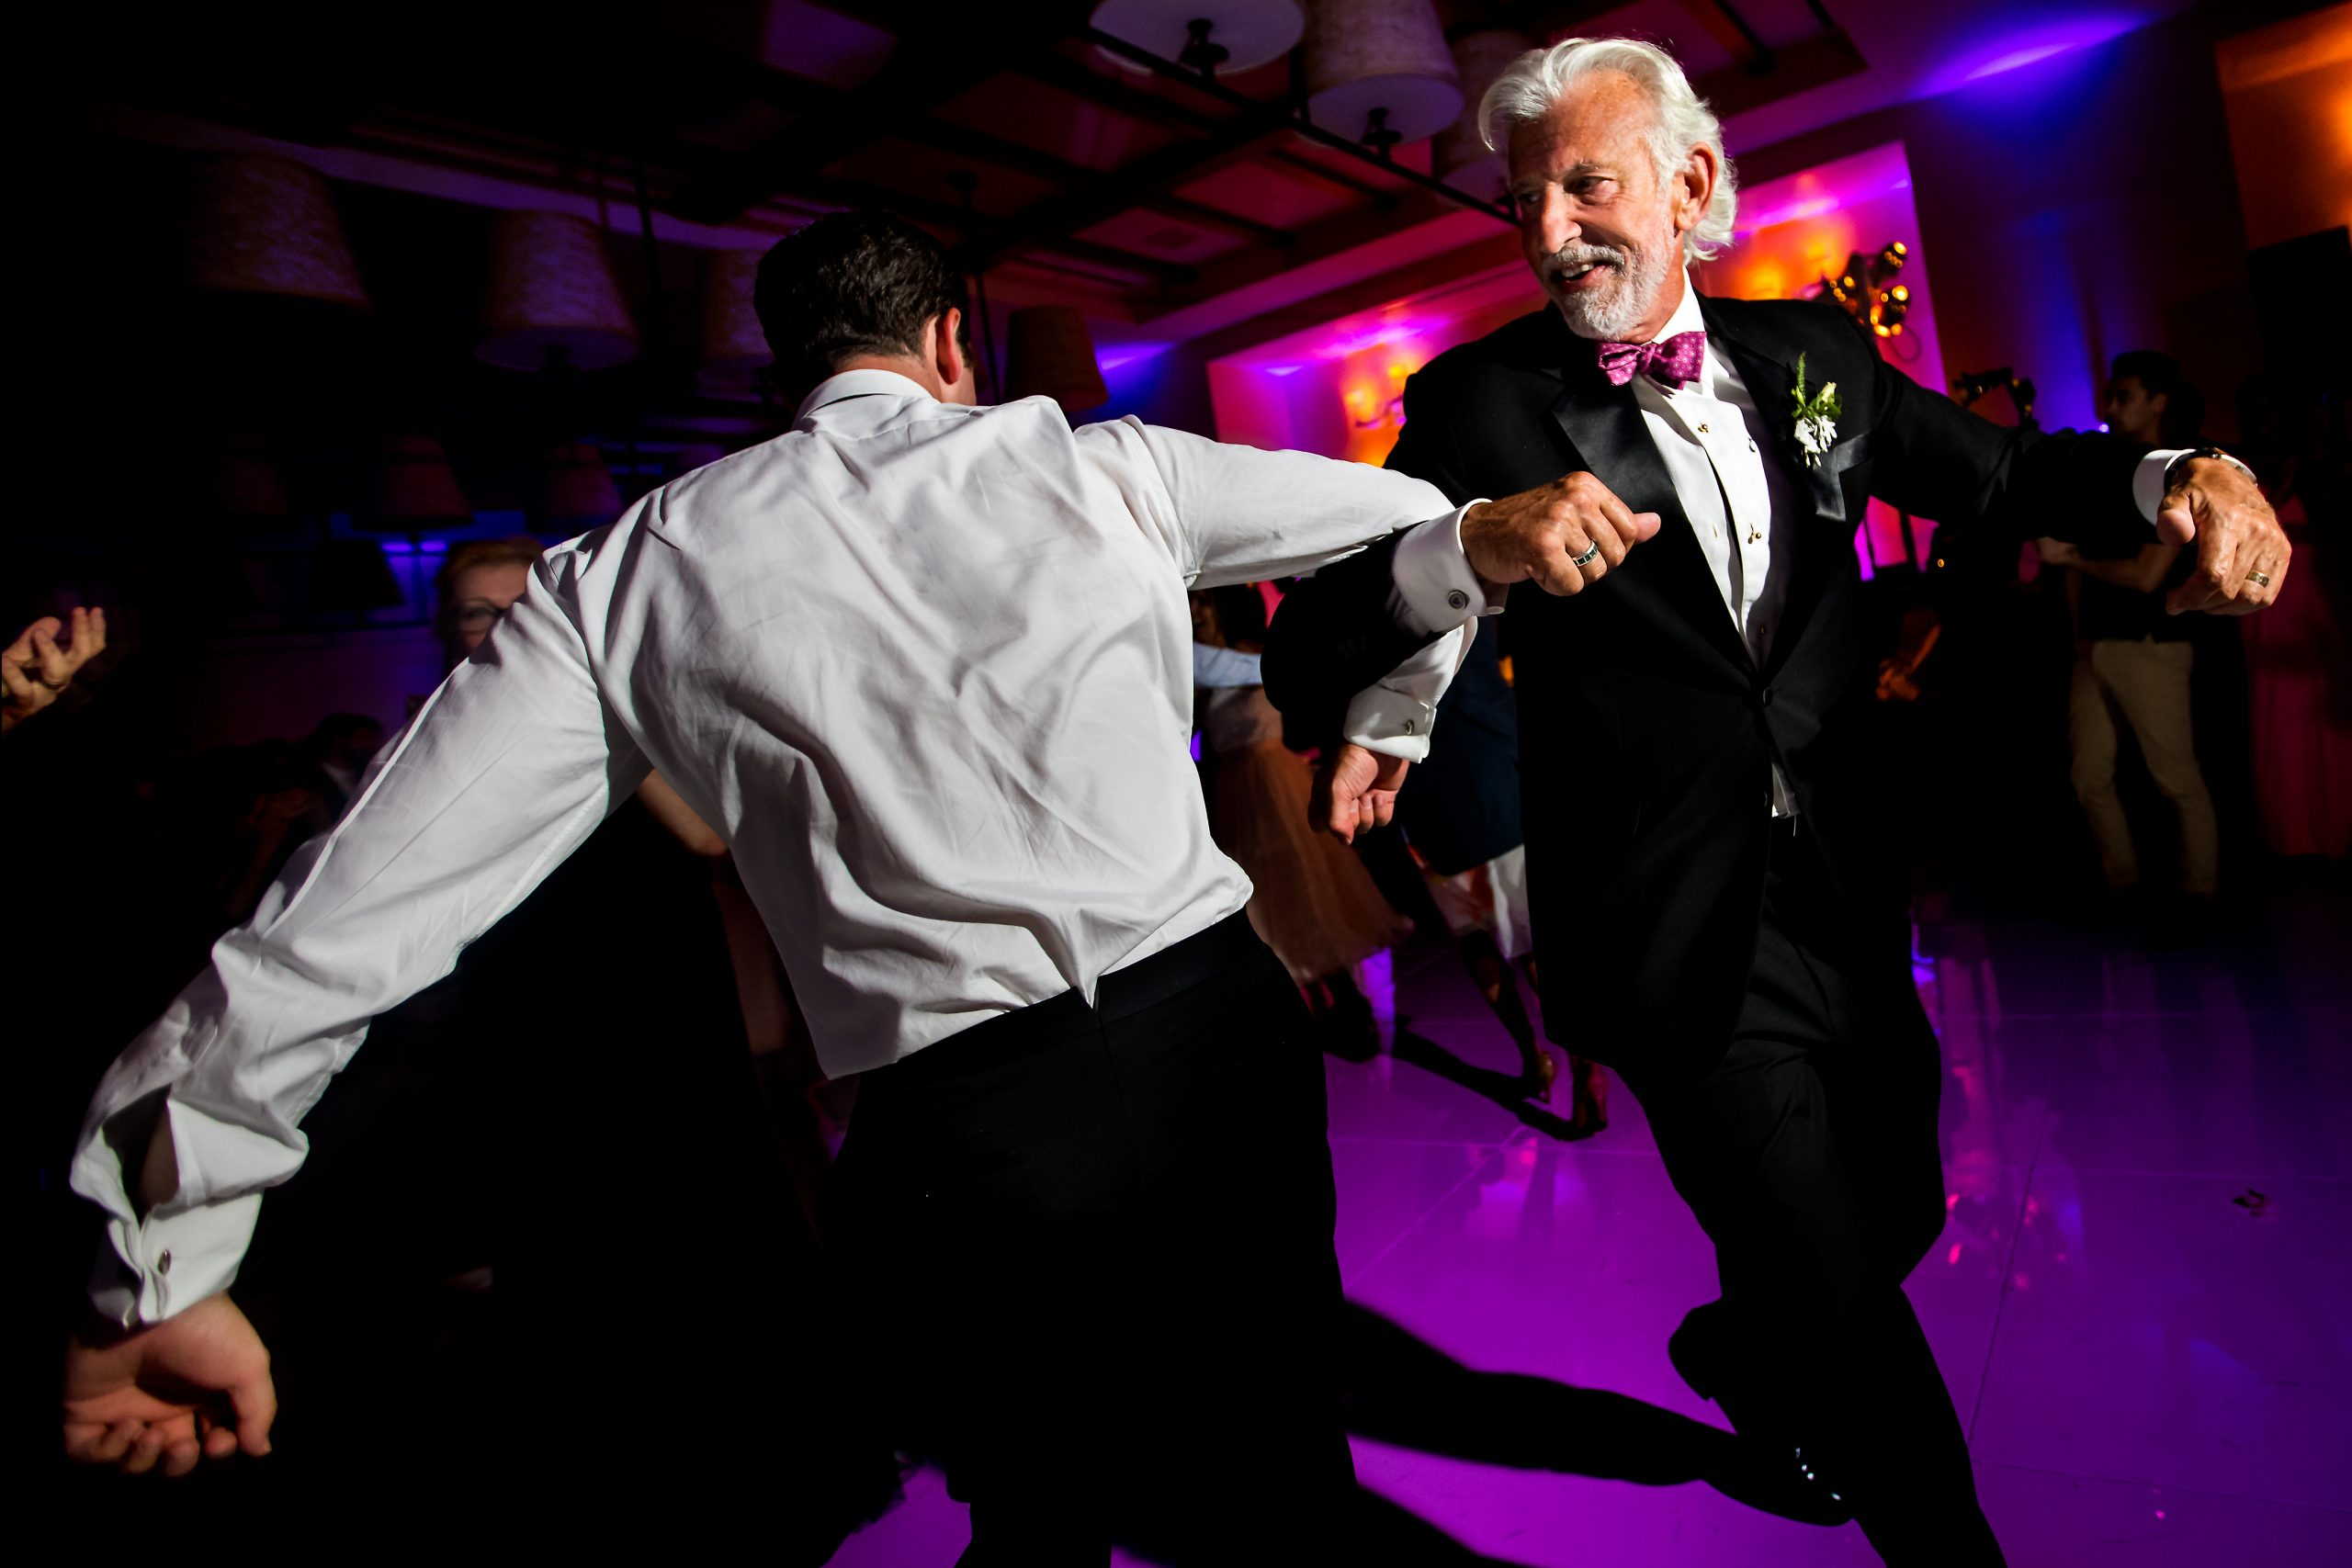 Two men dance on dance floor linking arms